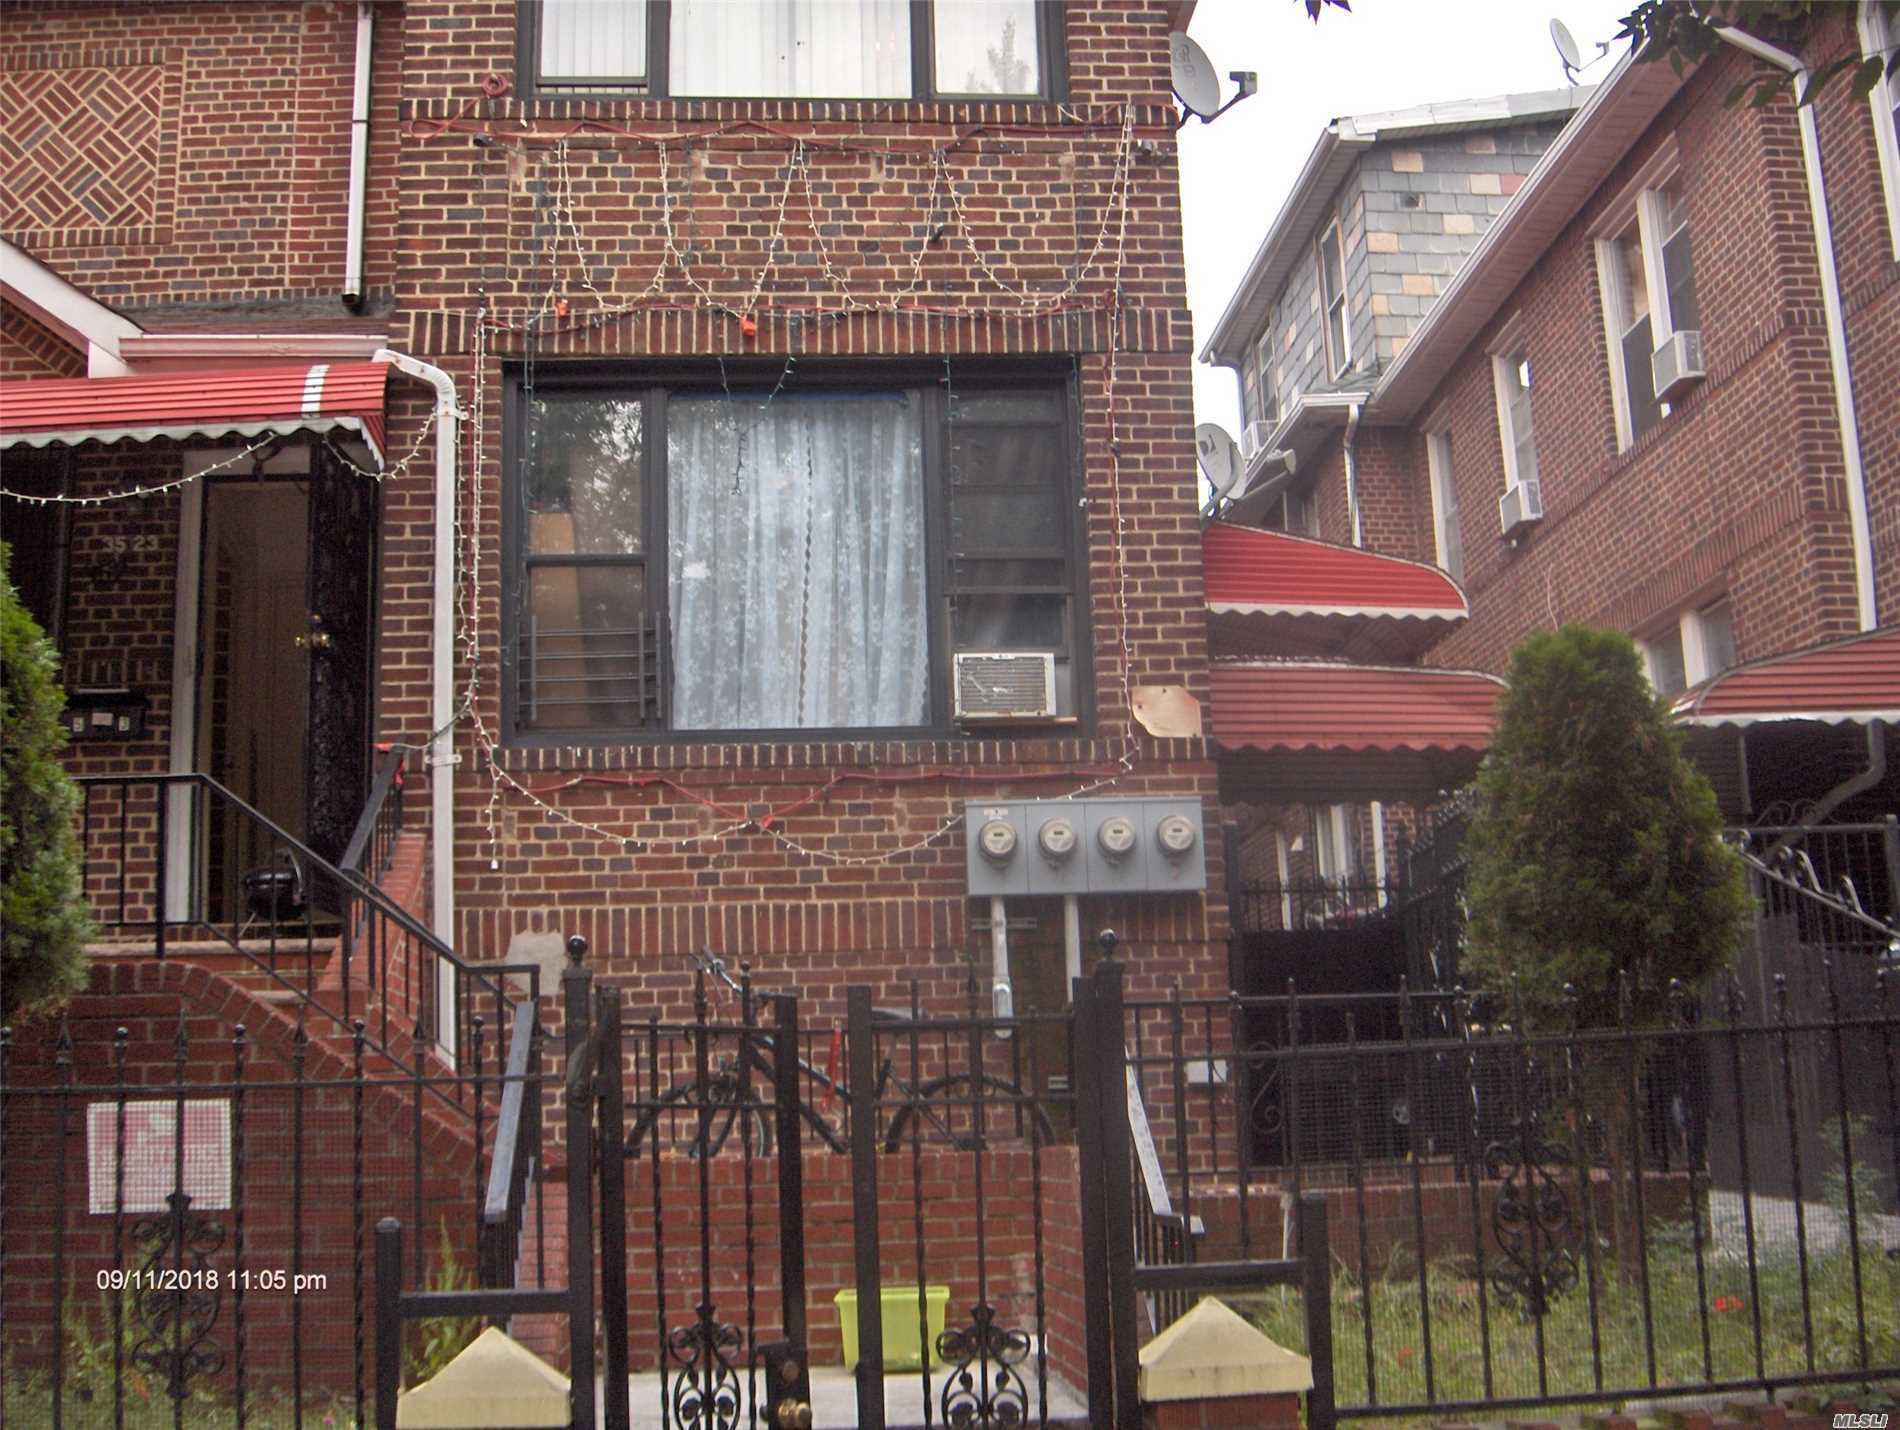 This Beautiful Brick 3 Family House Has Hardwood Floors Throughout - Well Maintained.